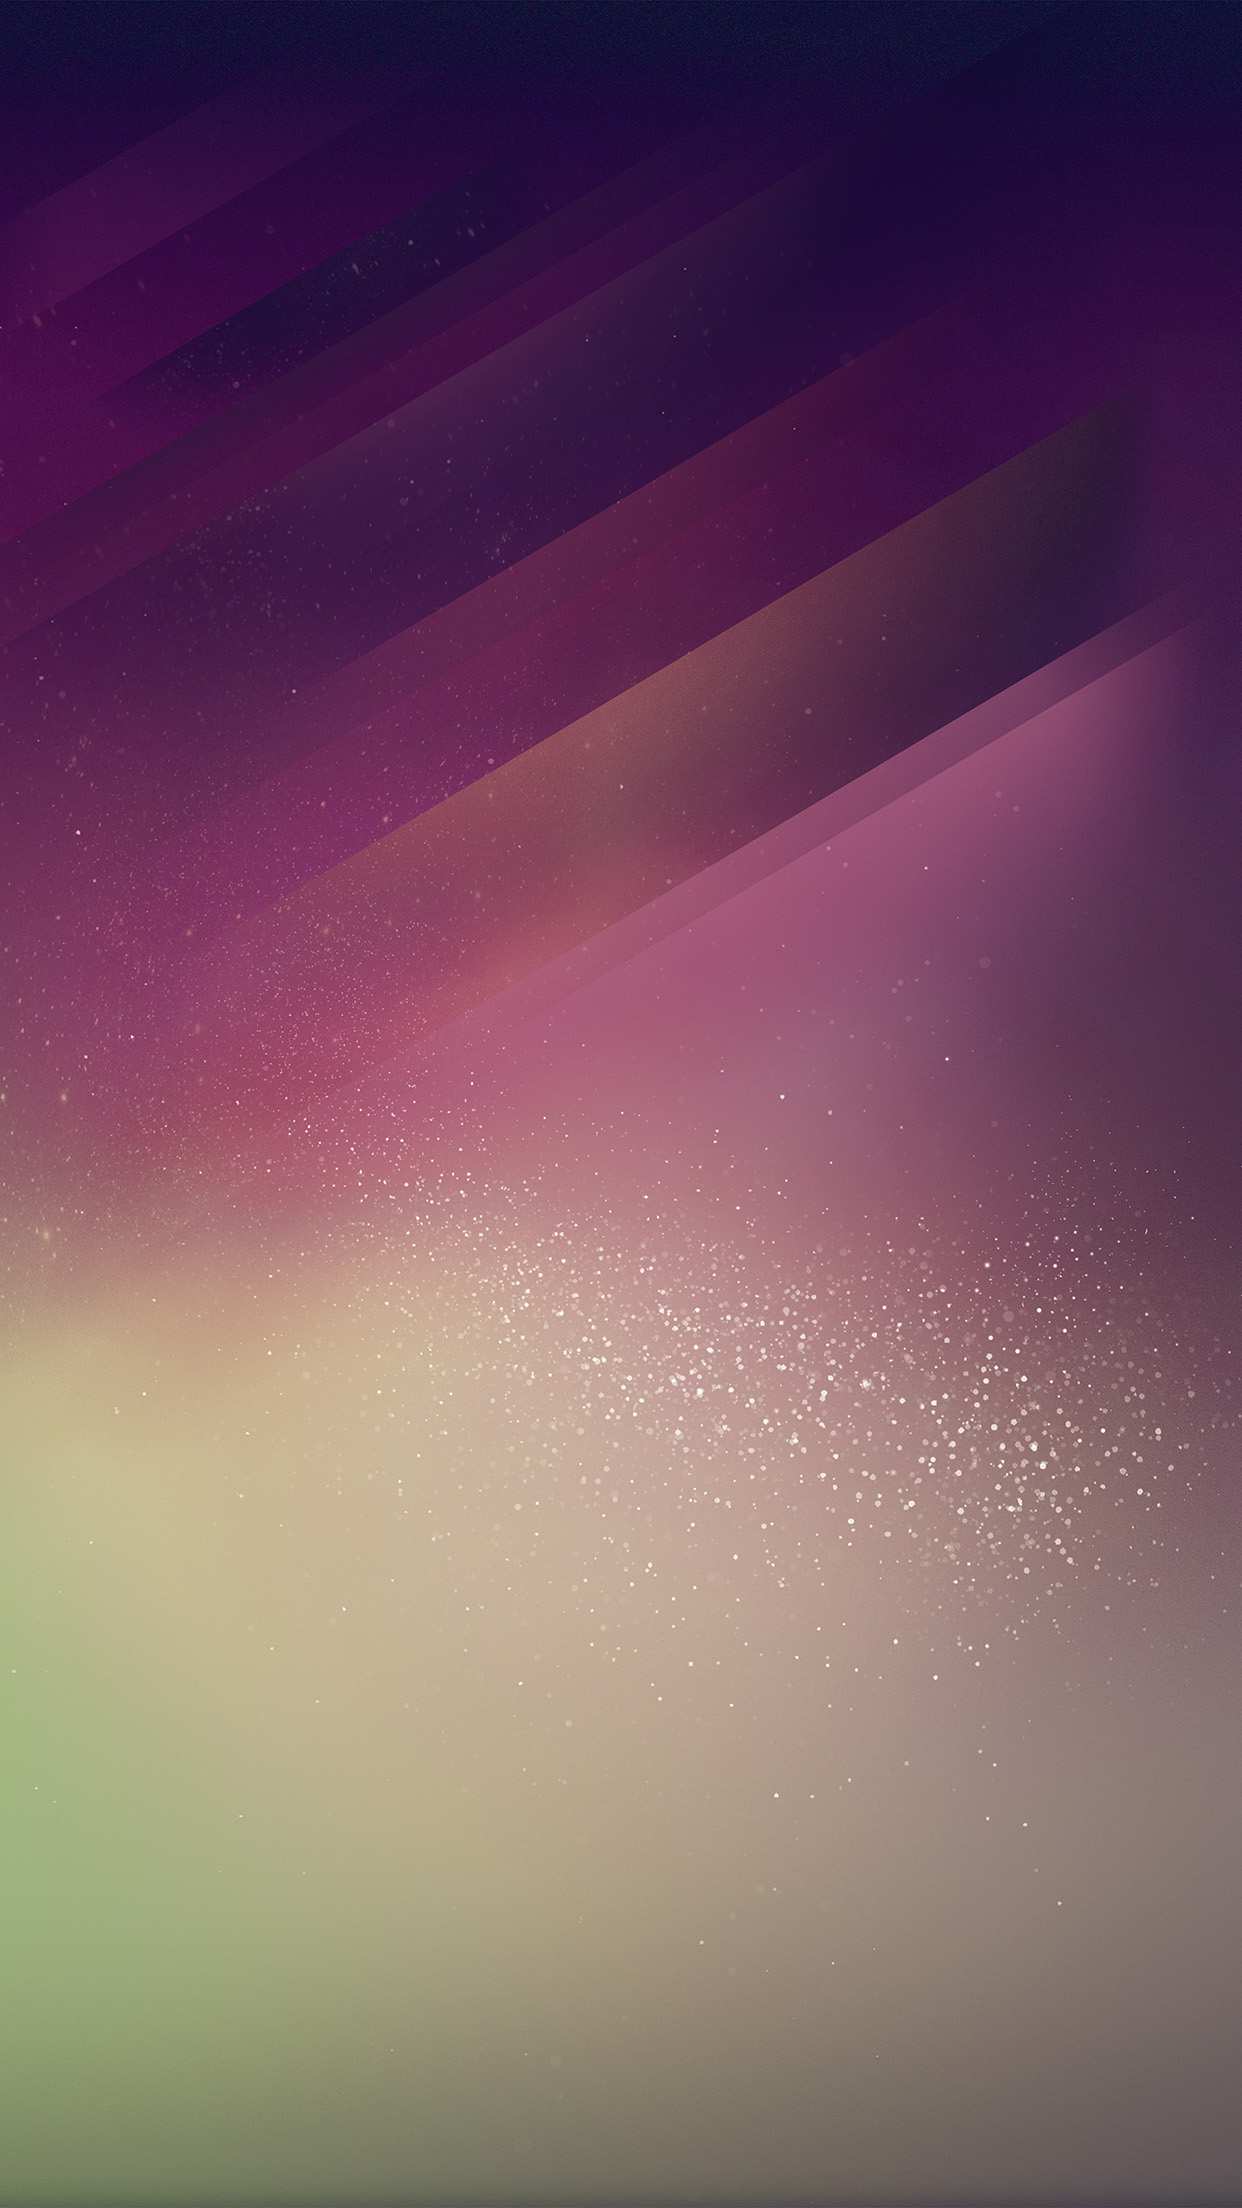 papers.co vw13 beautiful galaxy s8 samsung purple pattern background 34 iphone6 plus wallpaper